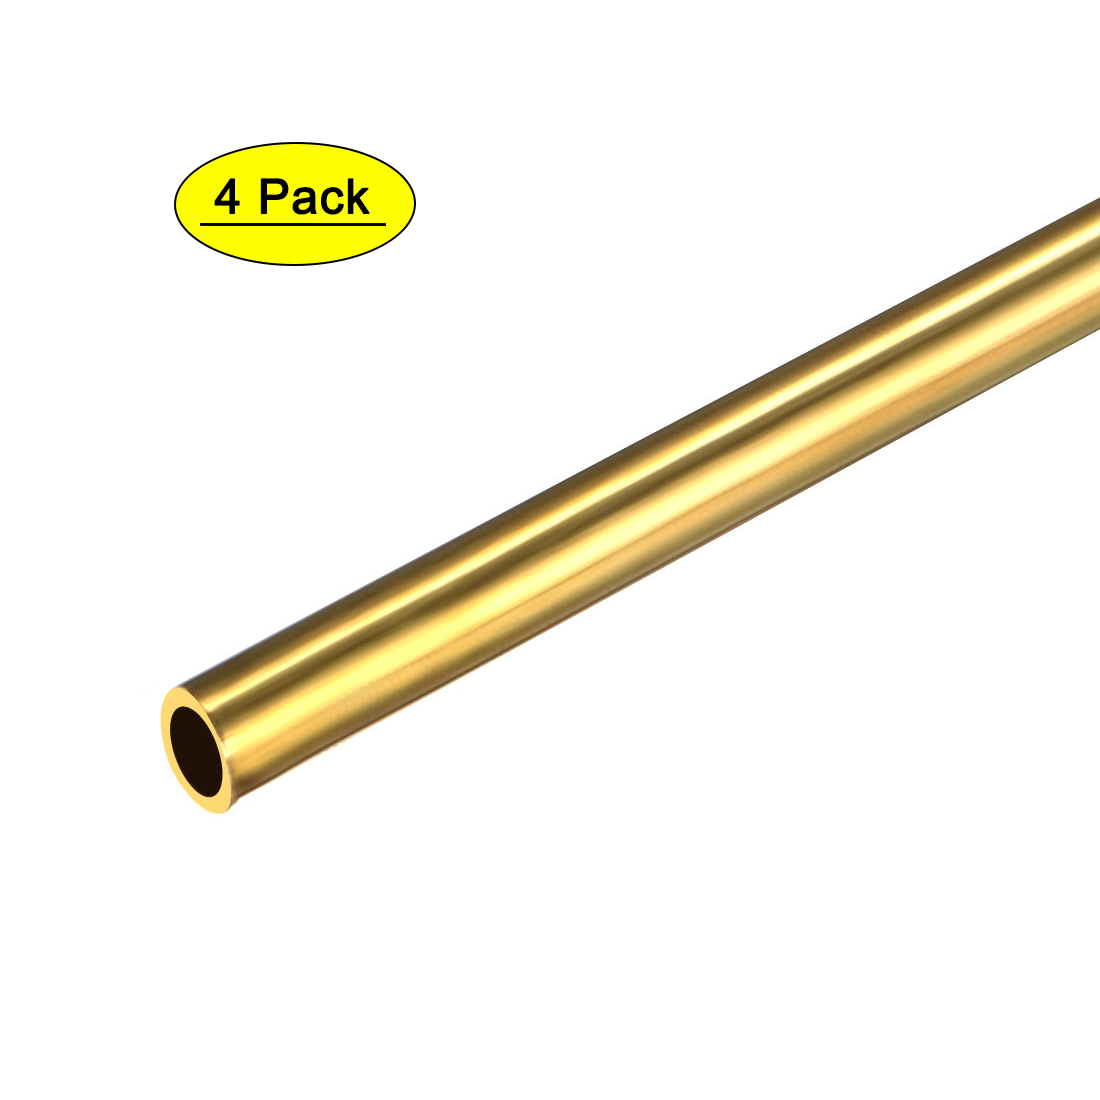 uxcell 2PCS 0.15mm x 0.4mm x 500mm Brass Pipe Tube Round Bar Rod for RC Boat